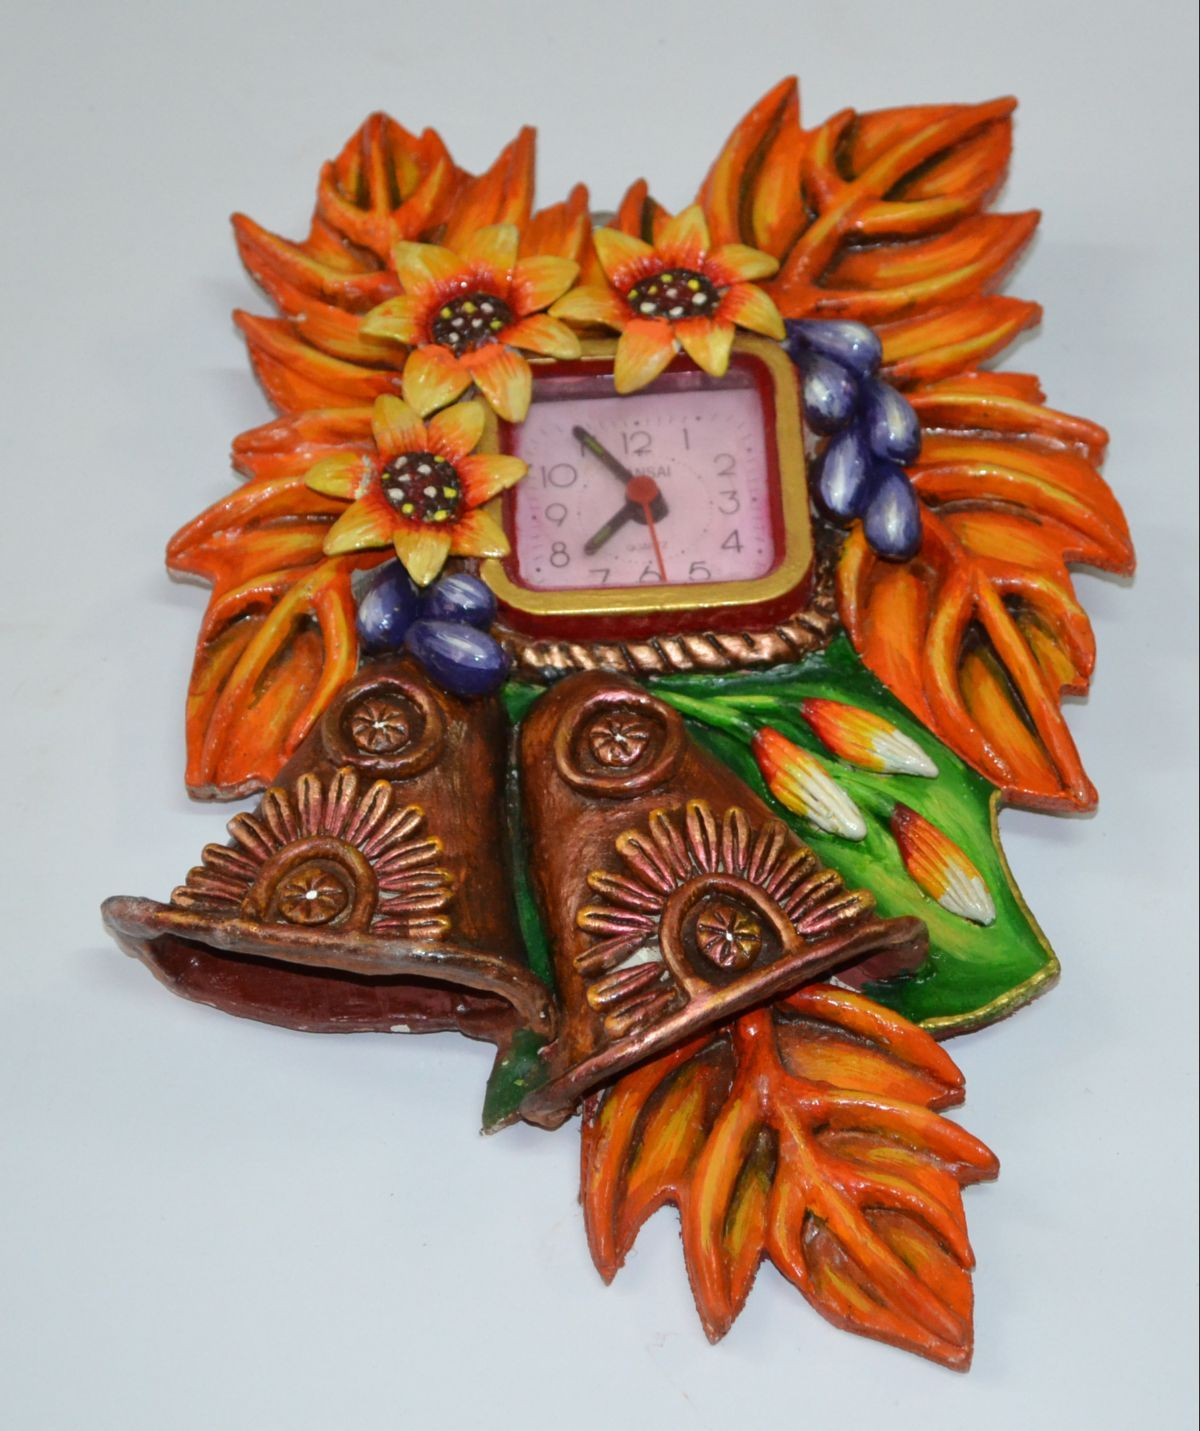 Handmade paper mache wall clock buy with 26 discount offer from handmade paper mache wall clock buy with 26 discount offer from craftshopsindia amipublicfo Images